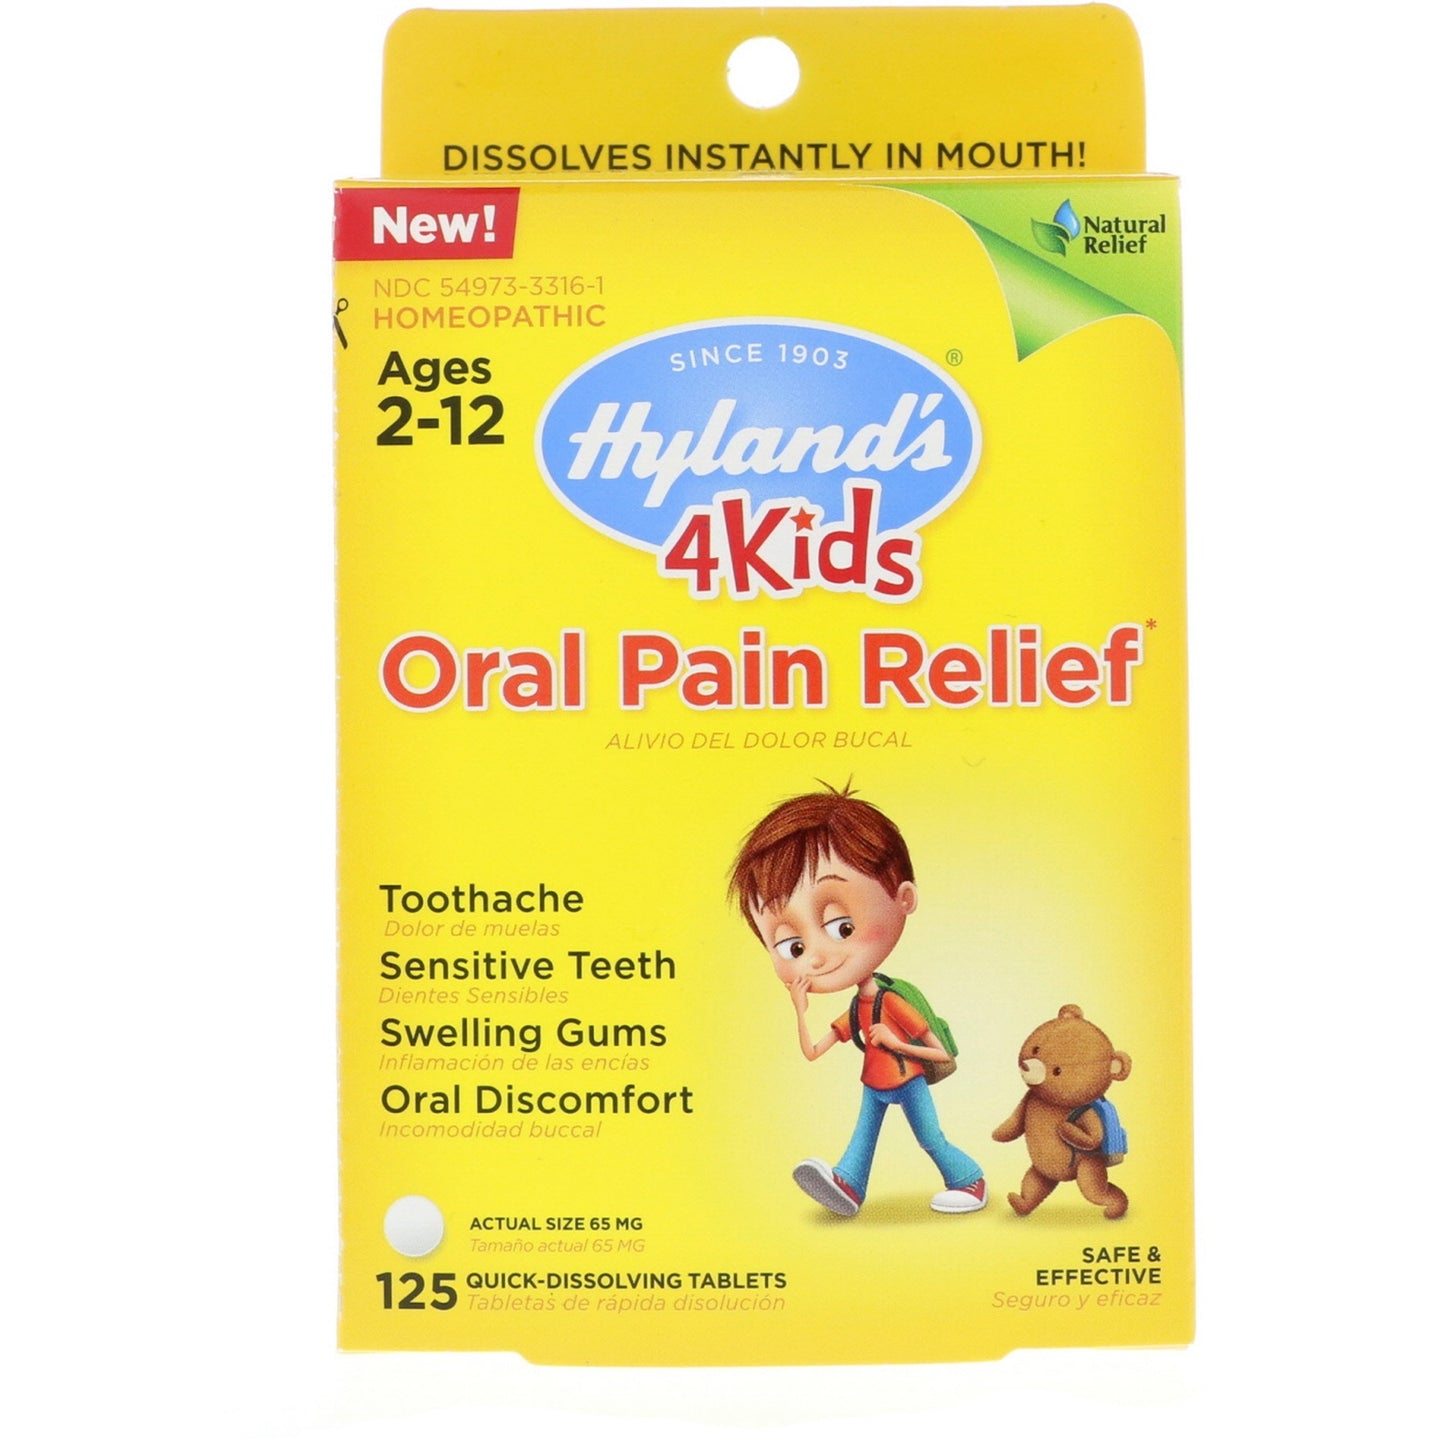 Hyland's 4 Kids Oral Pain Relief Homeopathic Medicine